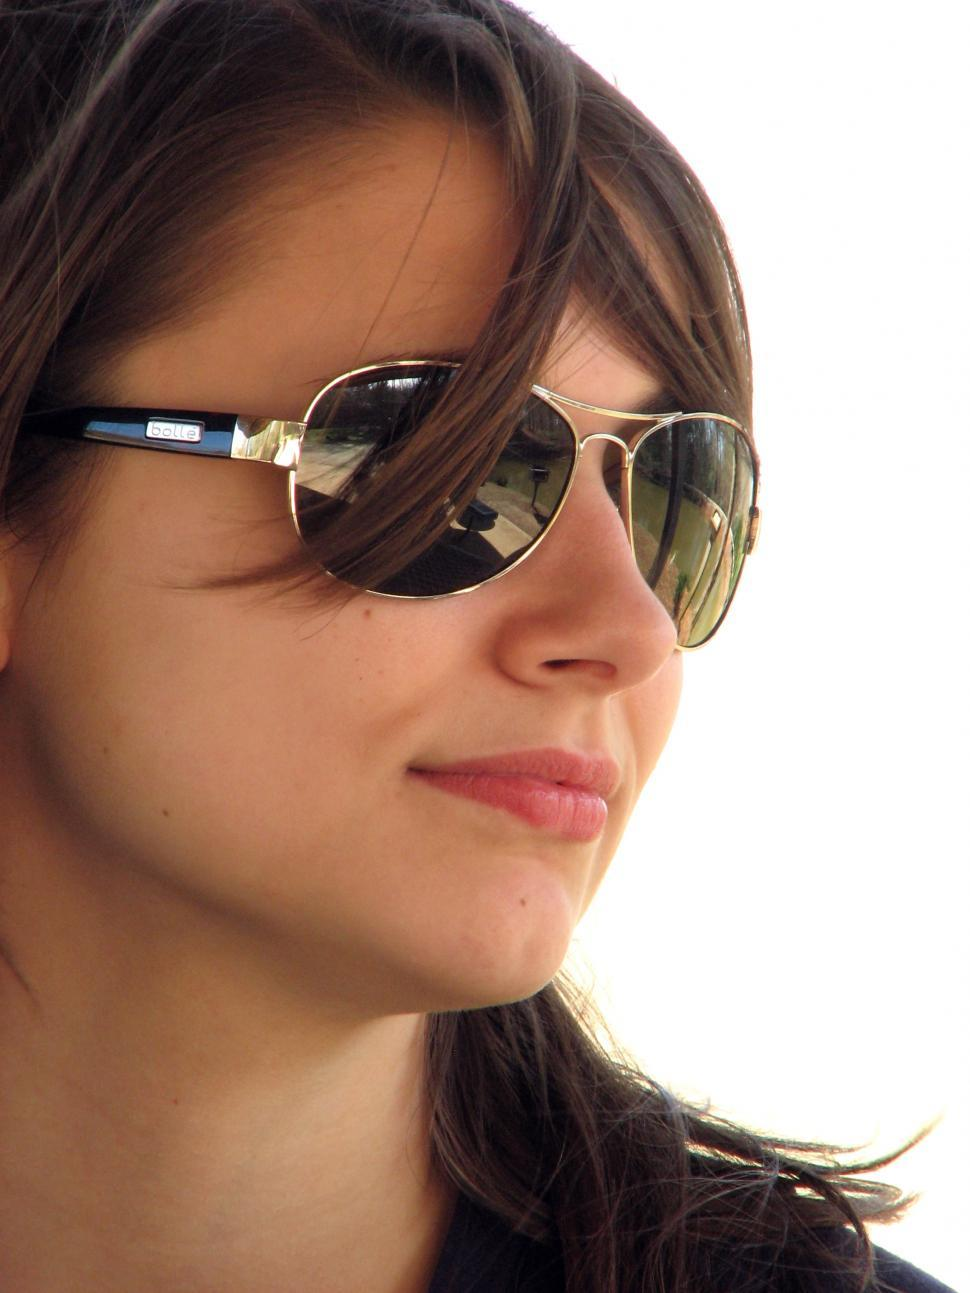 Download Free Stock Photo of Close-up portrait of a beautiful girl wearing sunglasses